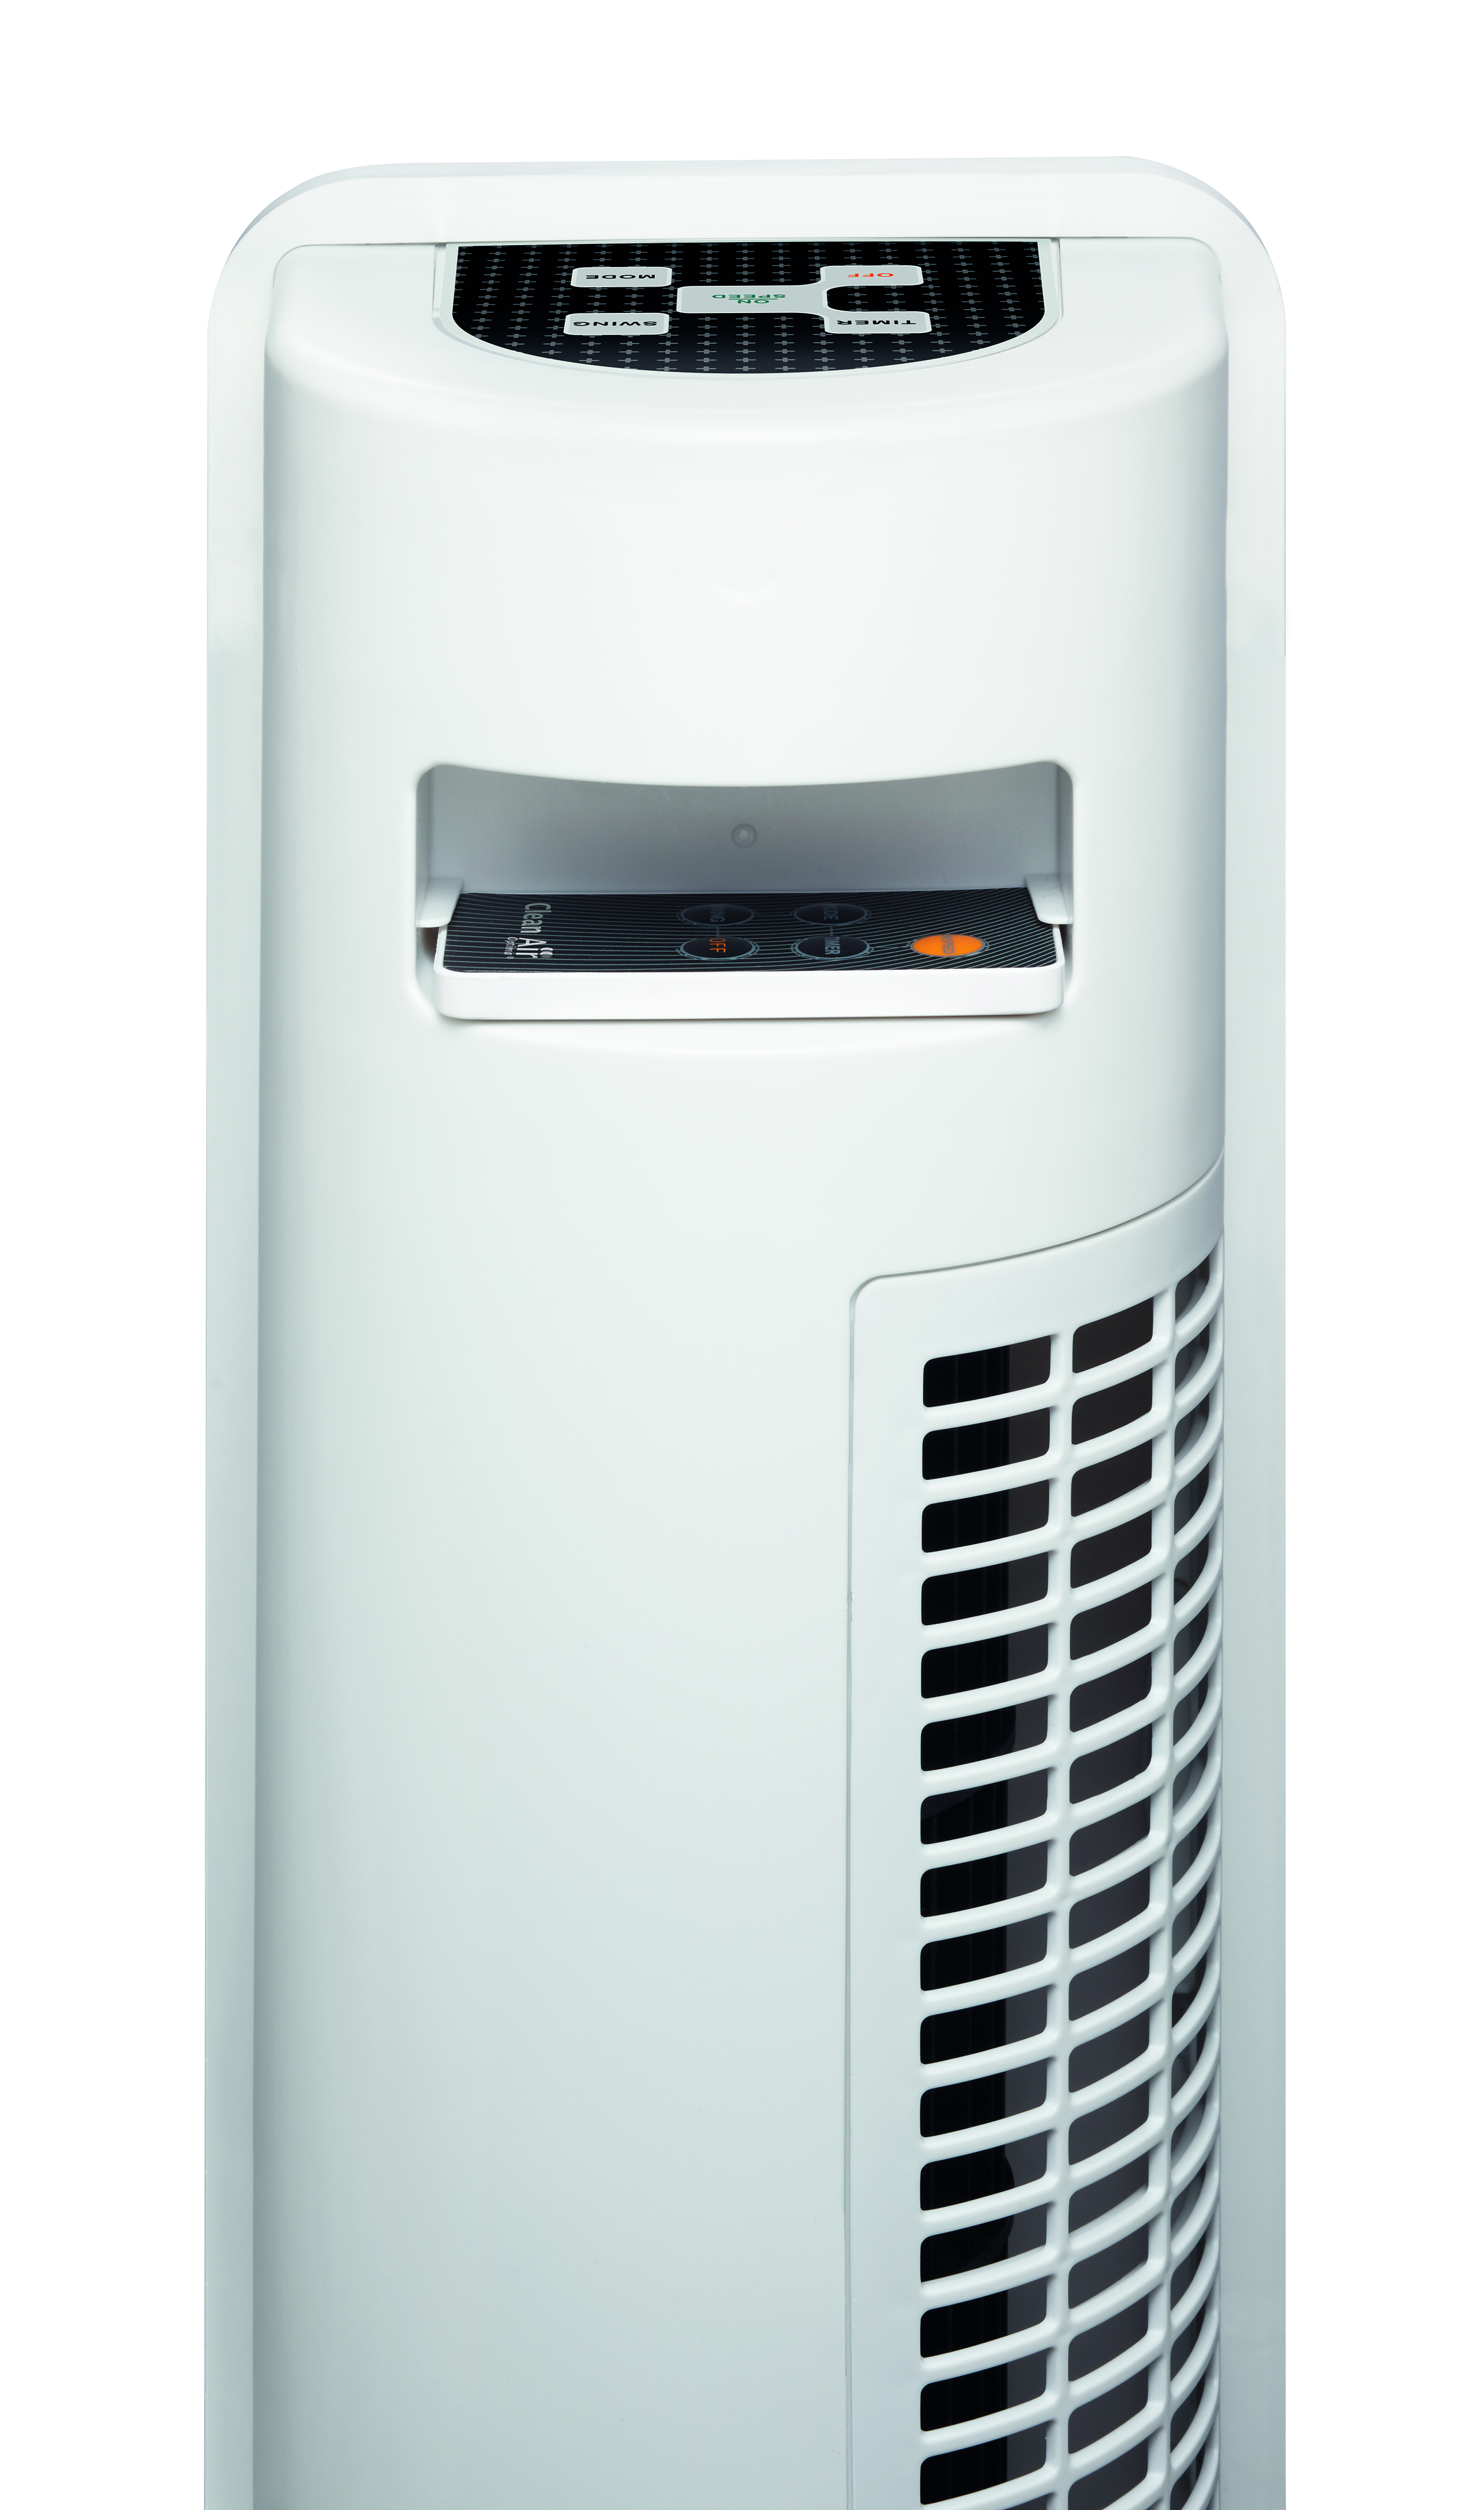 Ventilateur Colonne Carrefour Fans Air Purifiers Air Cleaners Ionizers Clean Air Optima